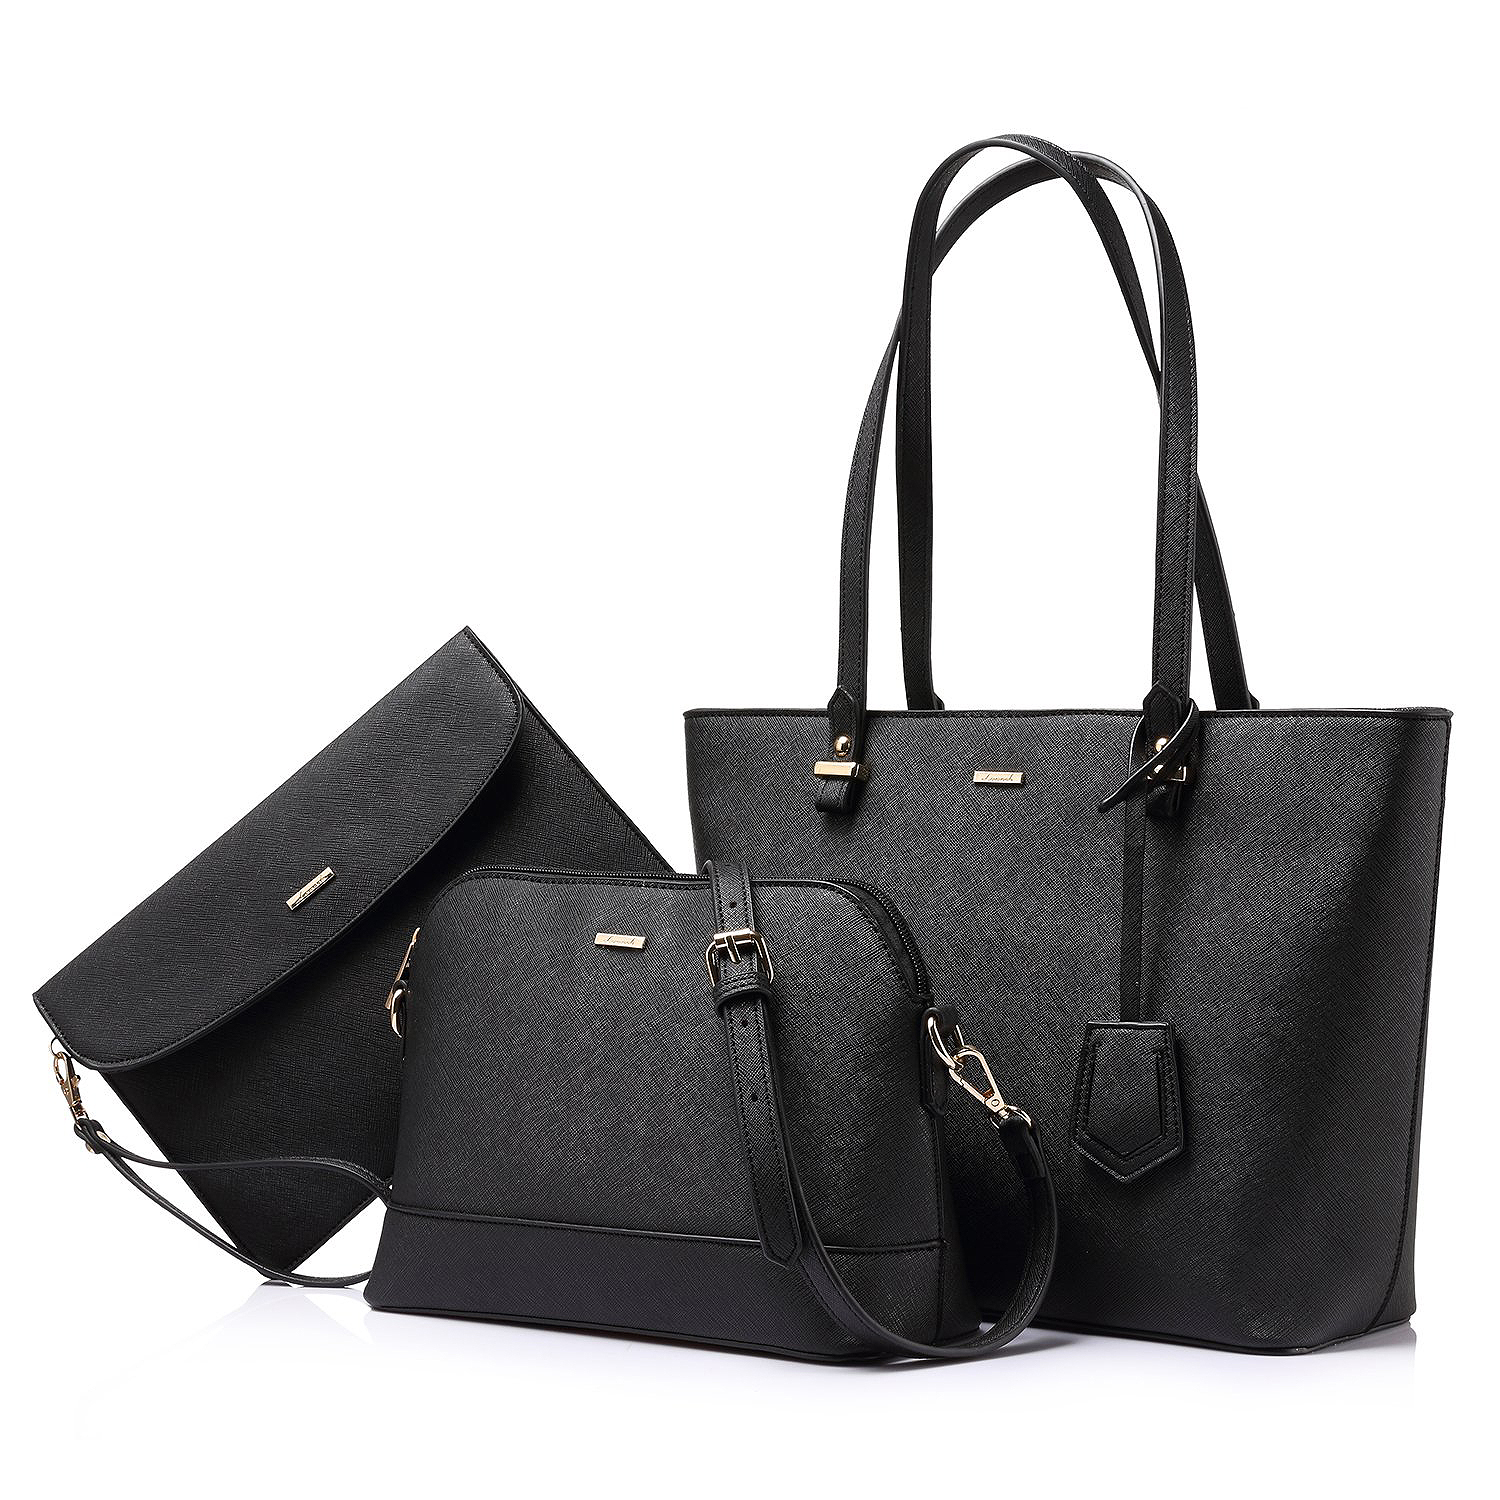 Lovevook Women's Tote Bag Three-Piece Set